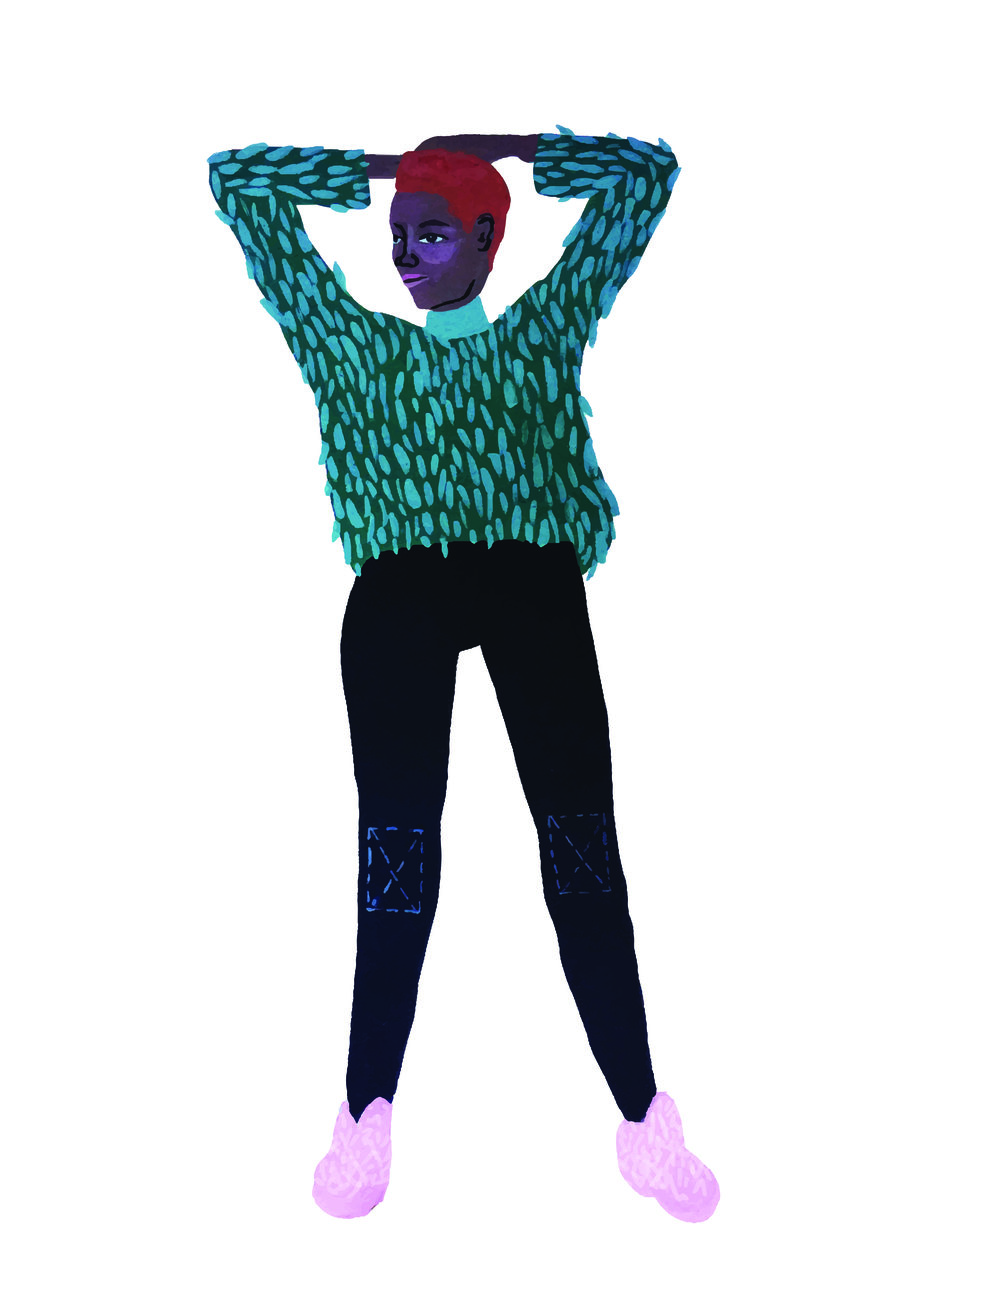 fuzzy sweater lady vector image-01.jpg